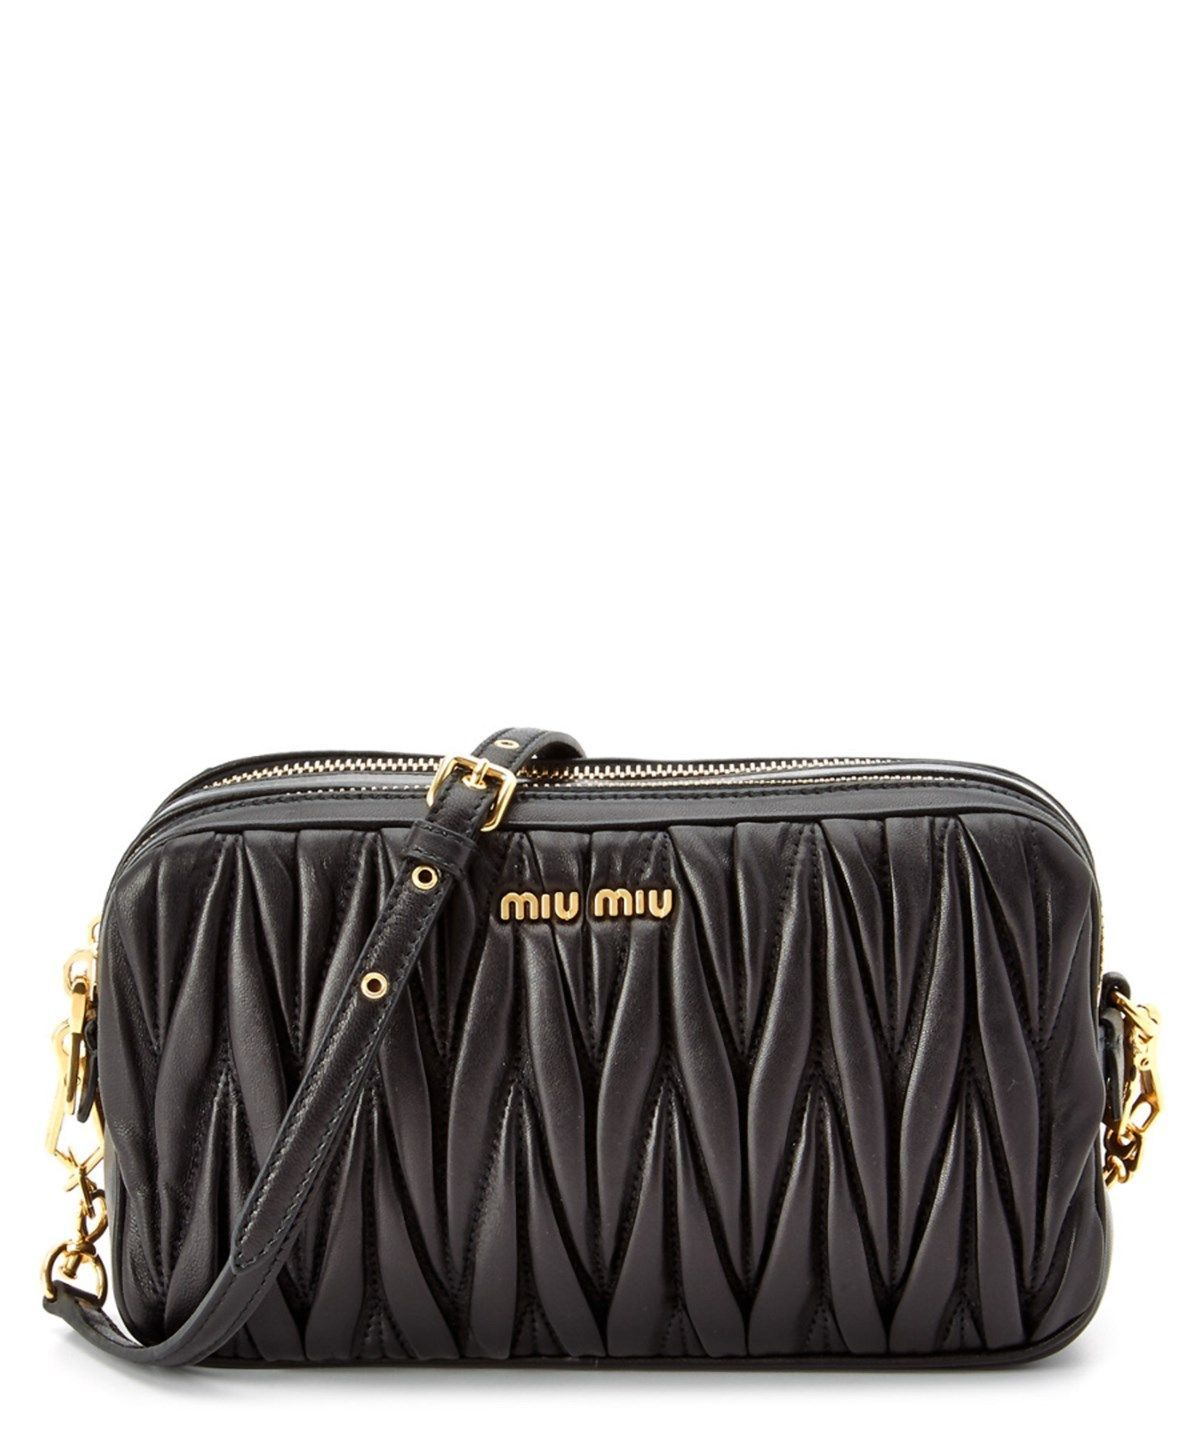 MIU MIU Miu Miu Matelasse Napa Leather Mini Bag .  miumiu  bags  shoulder  bags  leather  accessories  cardholder  lining    miumiubag 9644e11eea